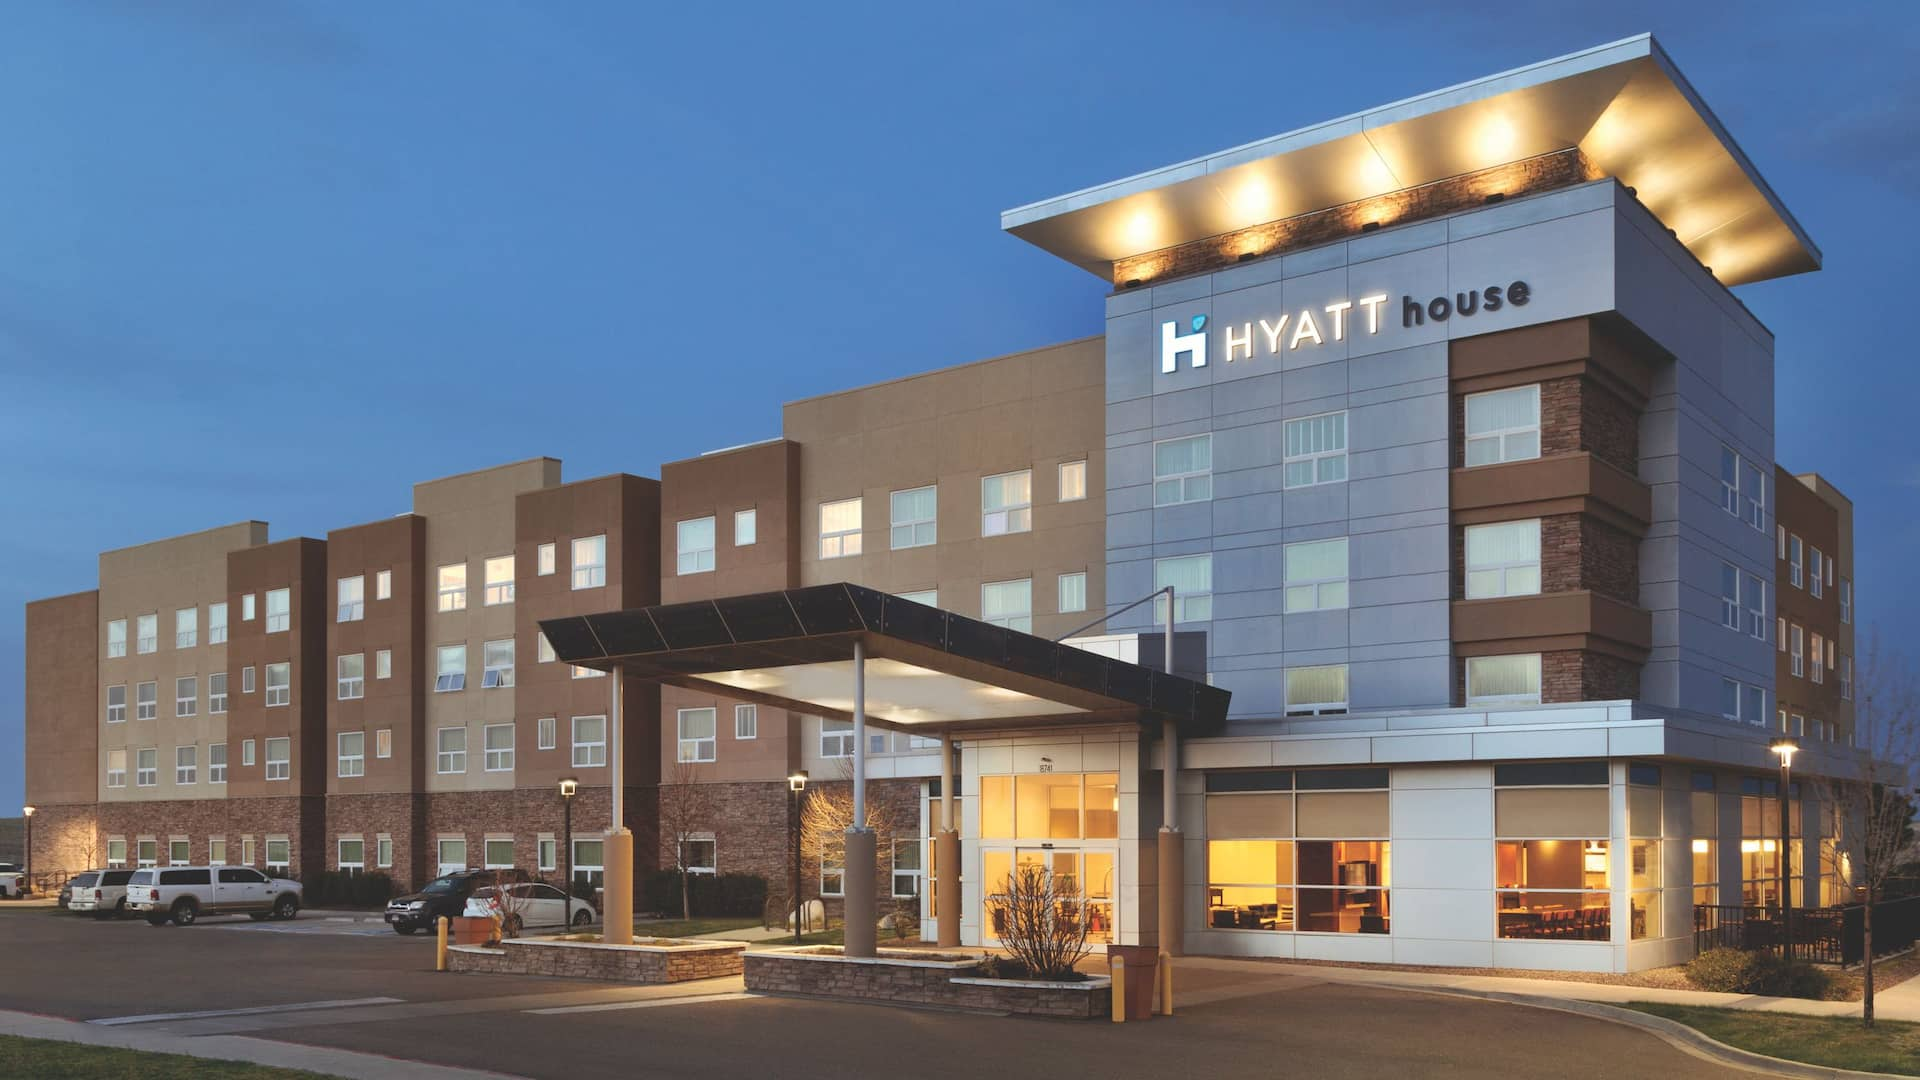 Hyatt House Denver Airport Exterior